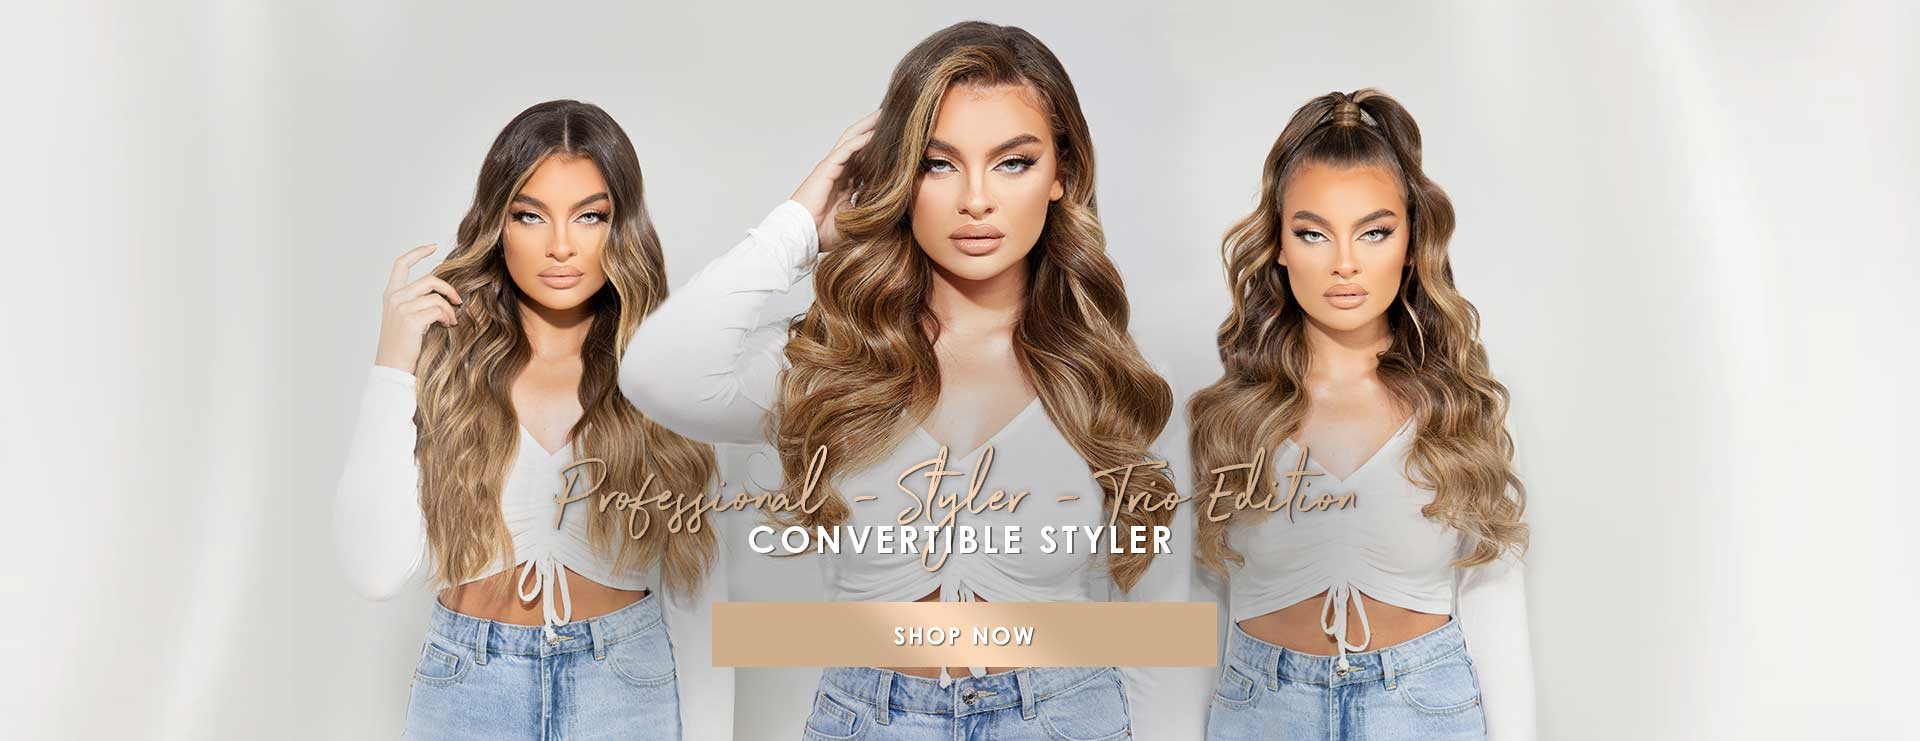 Professional Styler - Trio Edition | Triple Threat | Shop Styling Tools